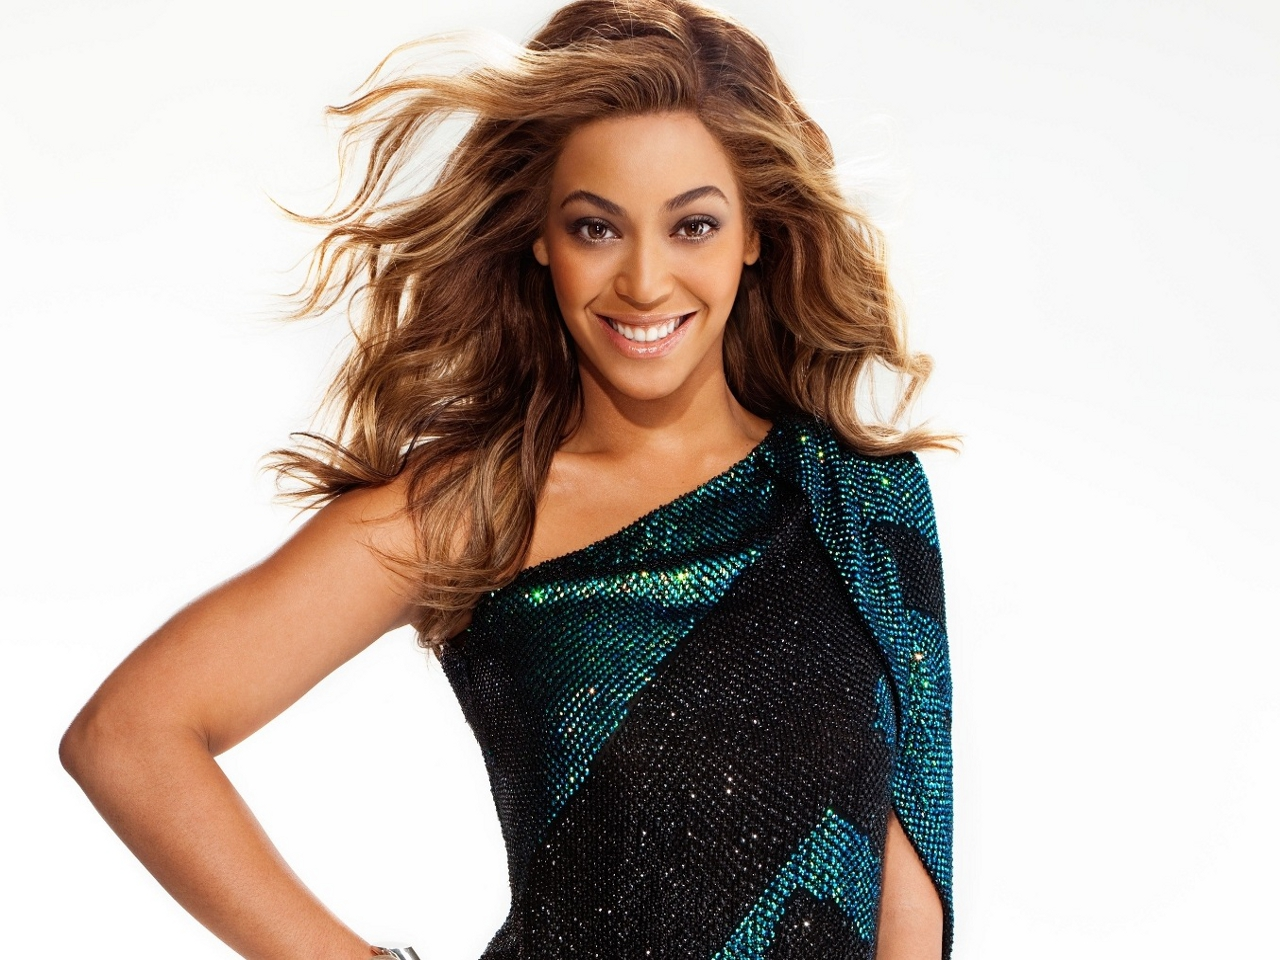 Beyonce Free Stock Photos view here: